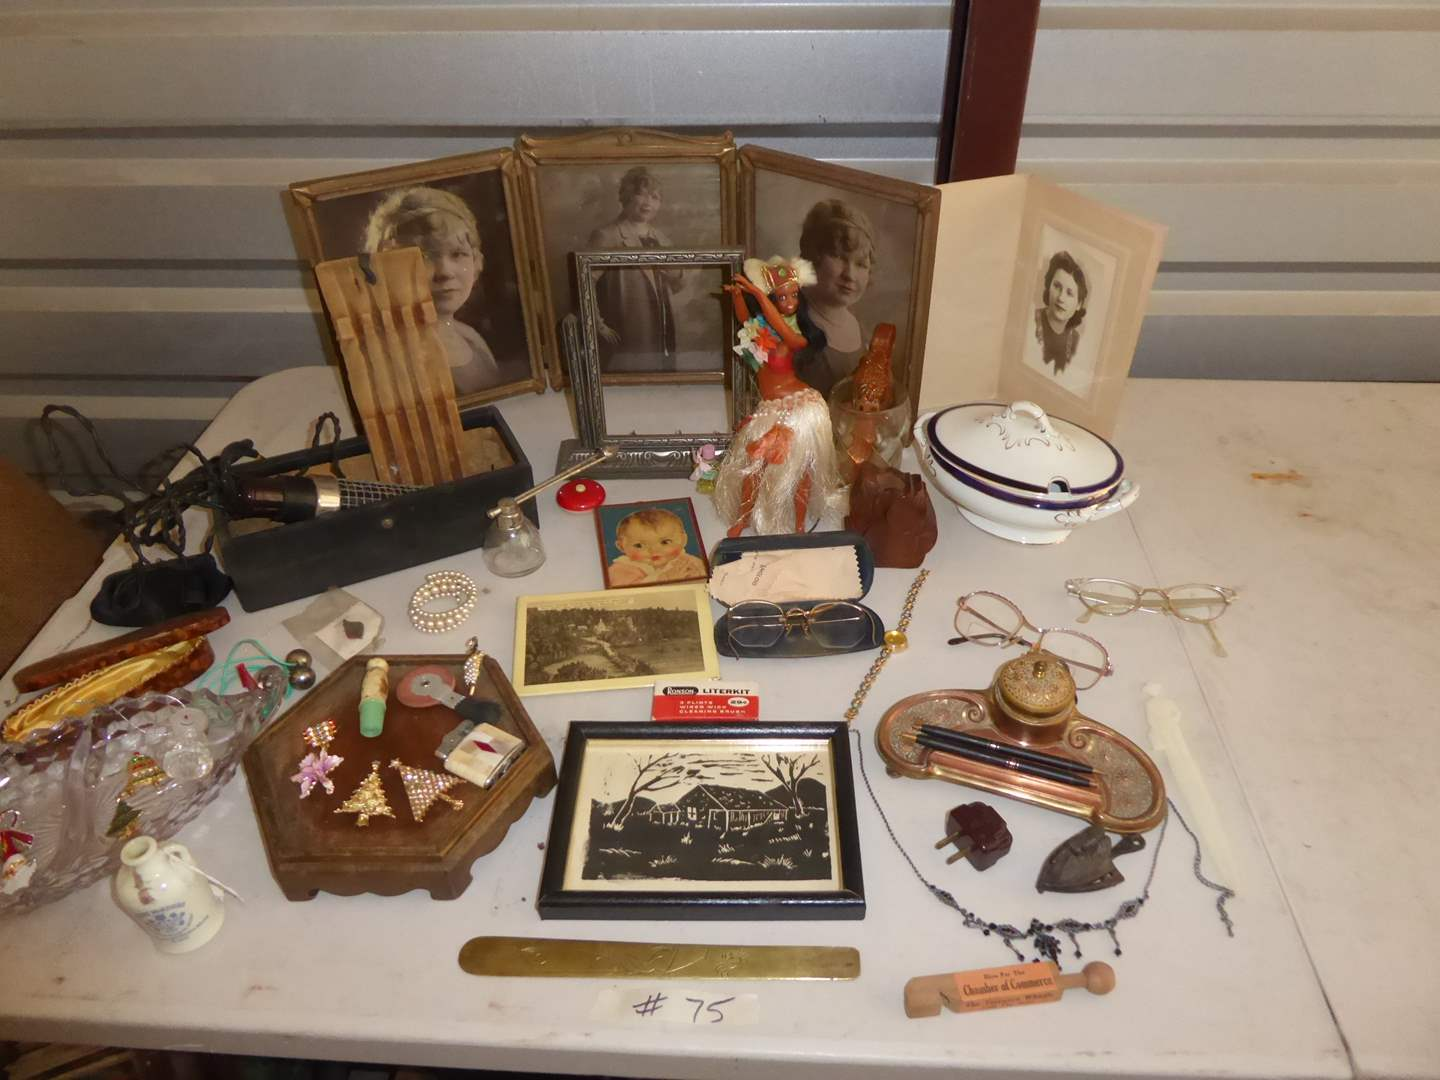 Lot # 75 - Vintage Ladies Collectibles - Framed Pictures, Ink Well, Glasses & More  (main image)